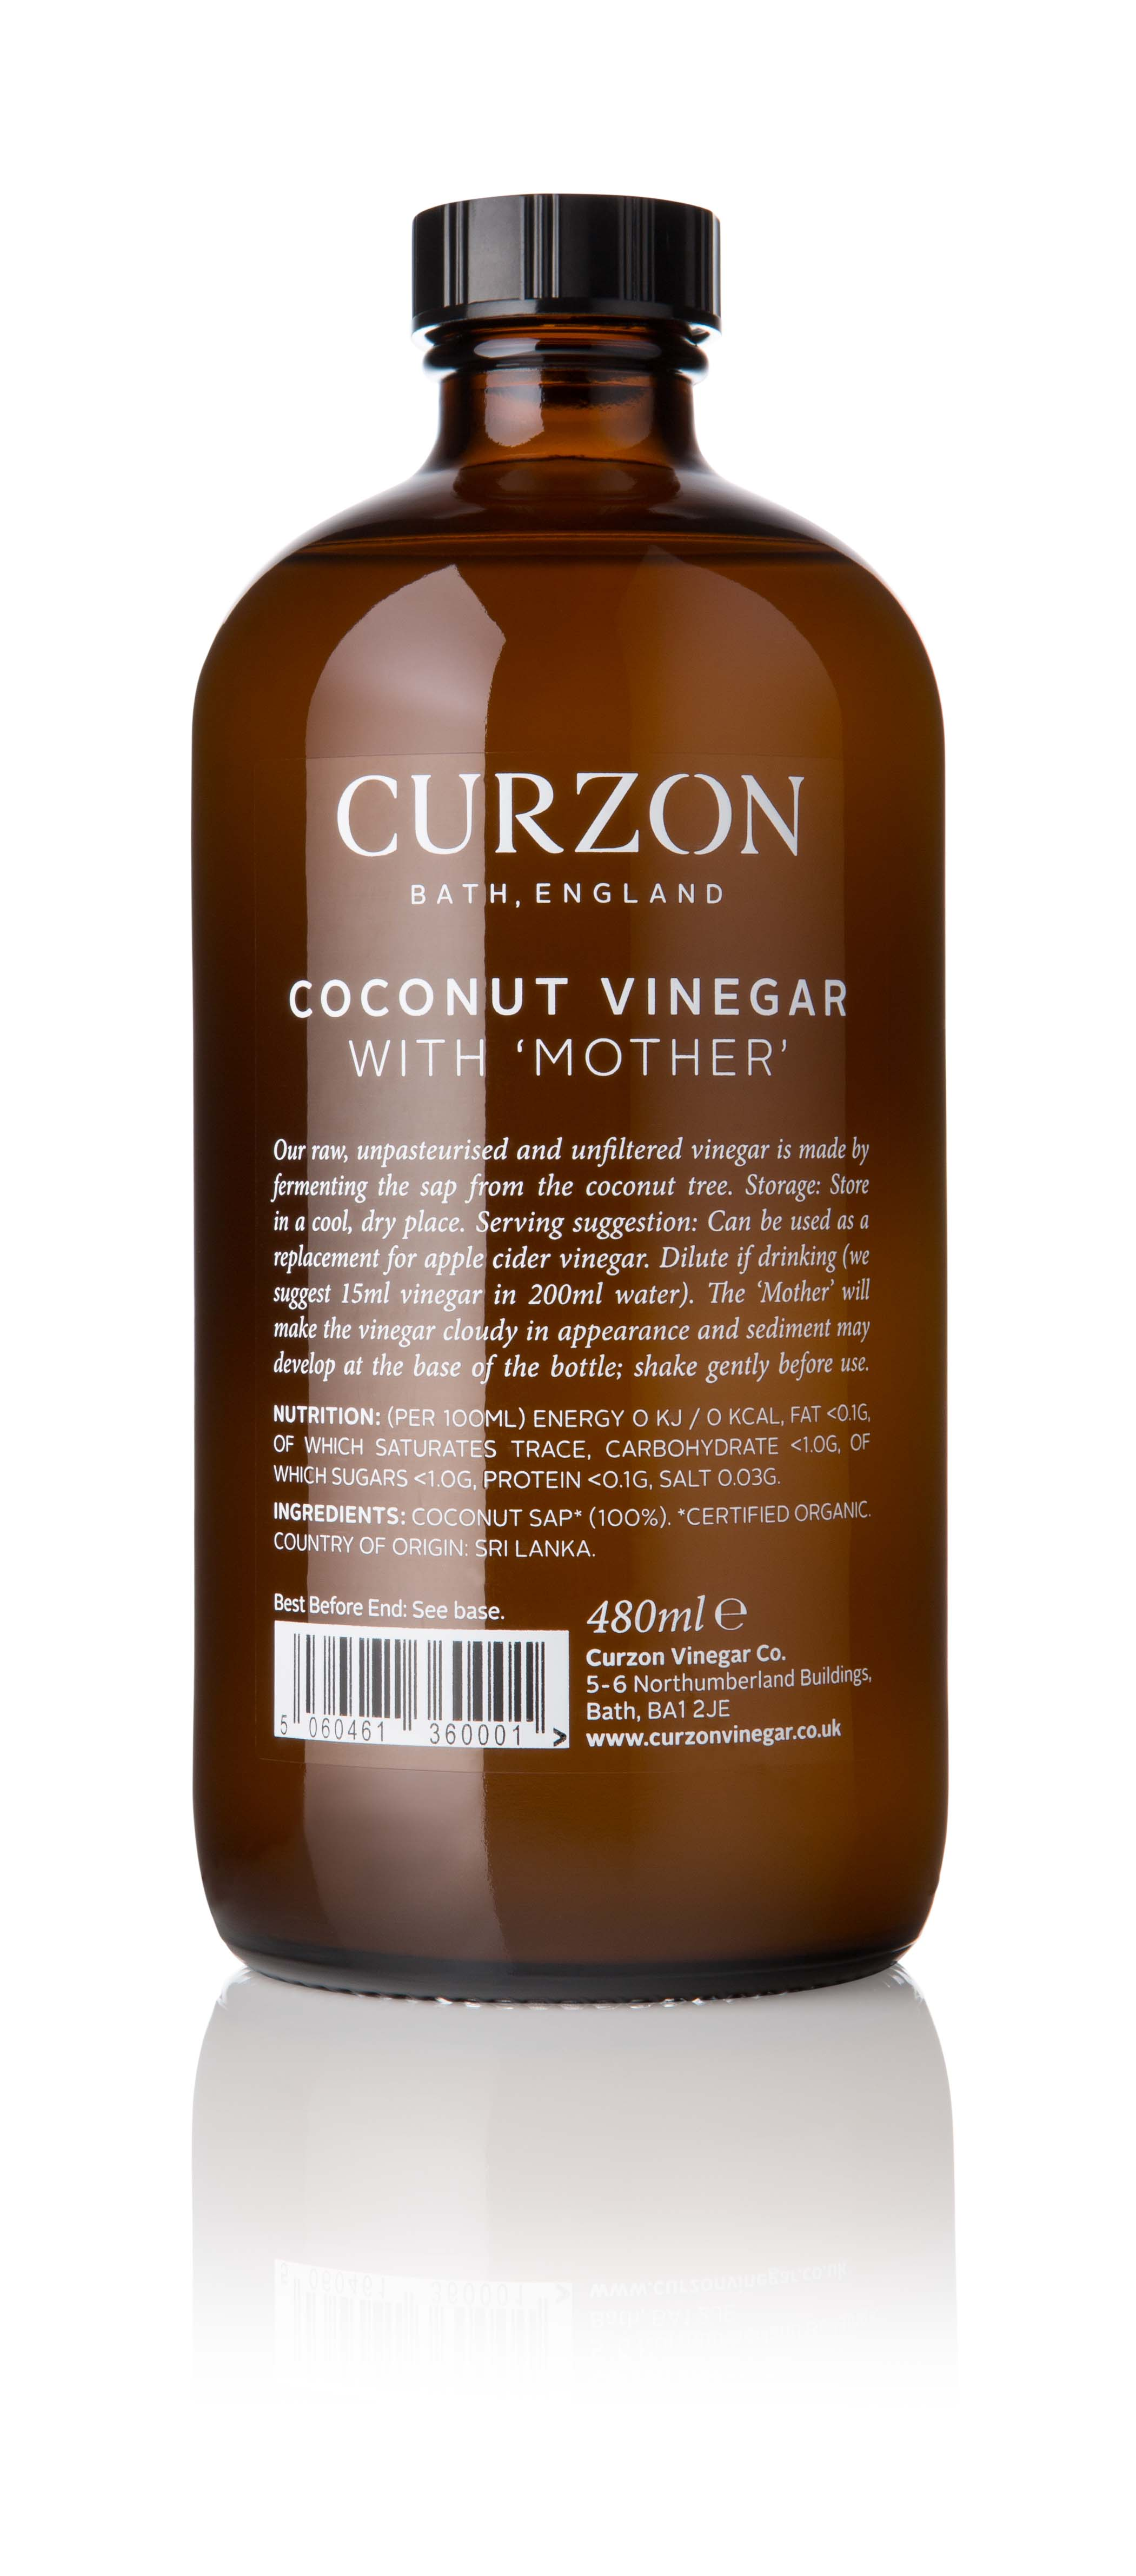 Curzon Coconut Vinegar Bottle (small) copy.jpg